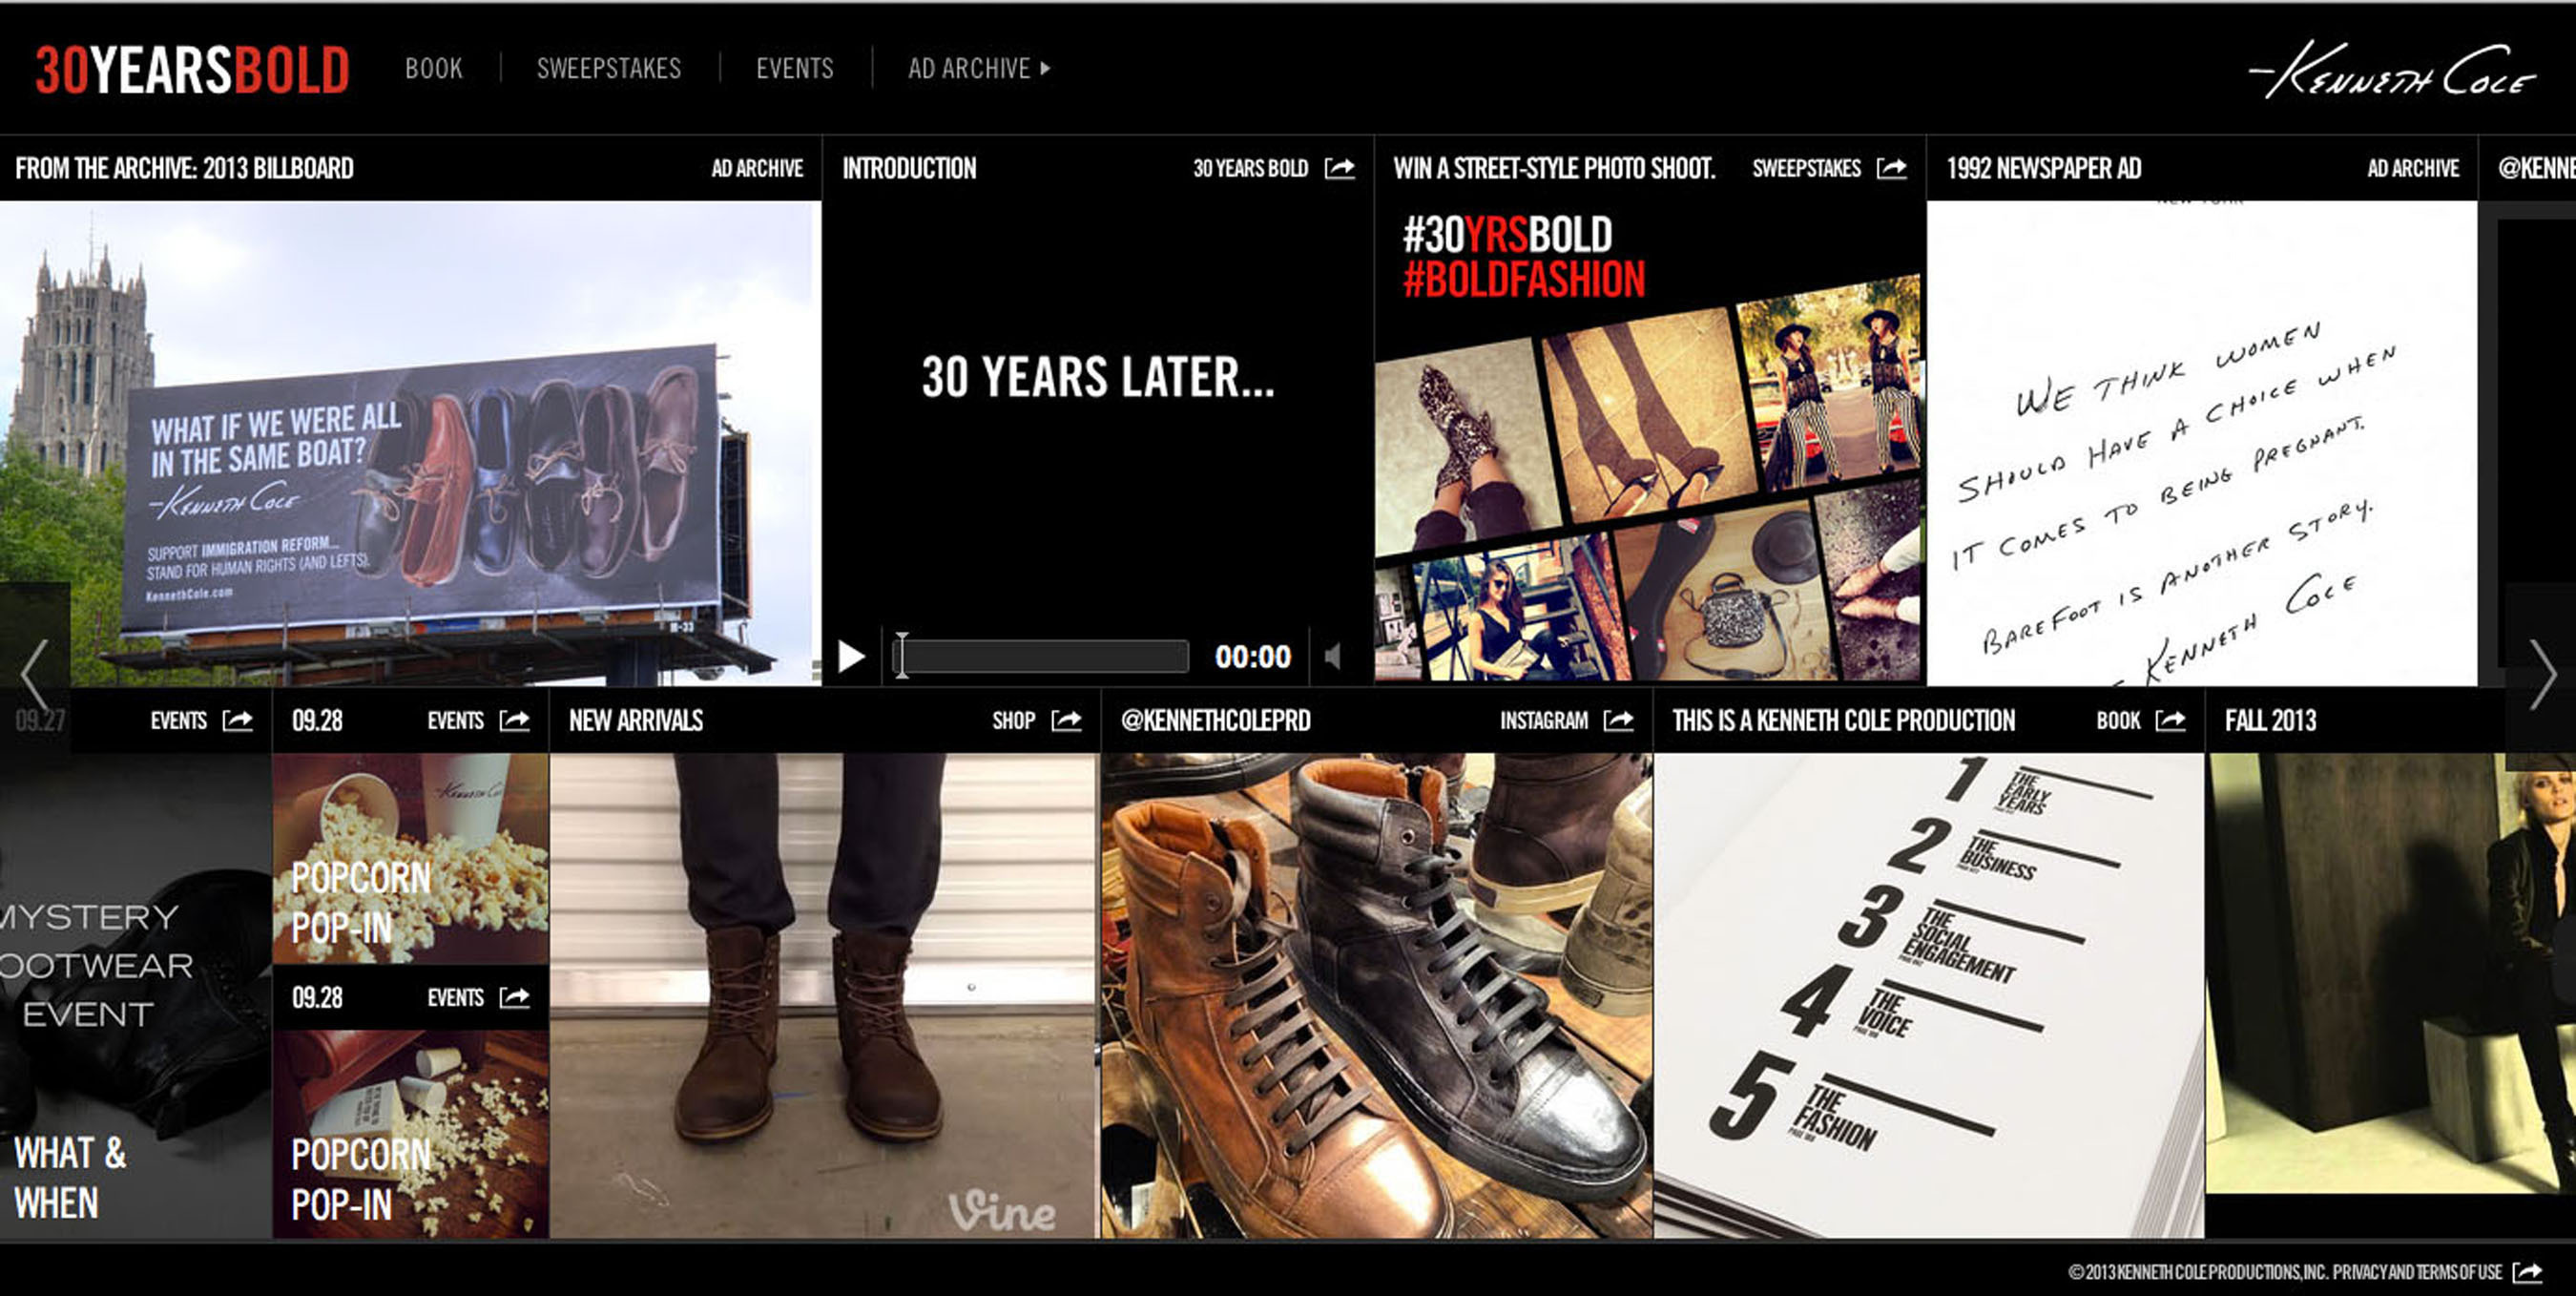 Kenneth Cole Launches 30YearsBold.com